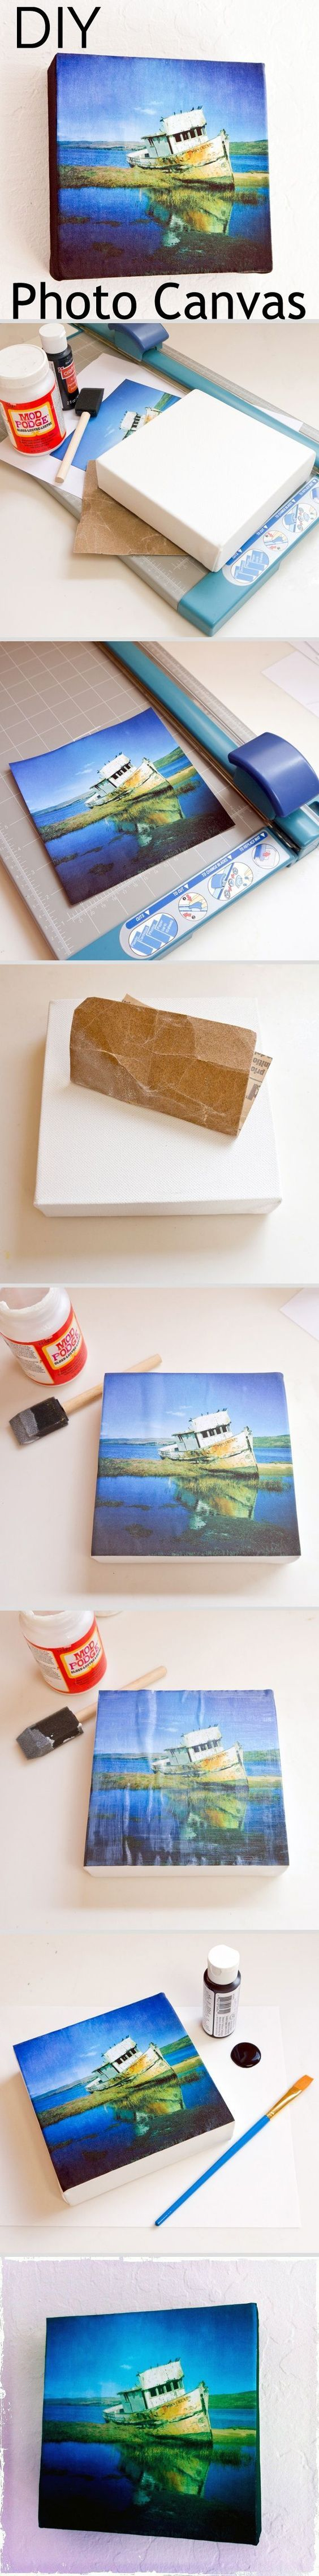 Make your own photo canvas prints to save money. photos are great for this! DIY, Do It Yourself, #DIY